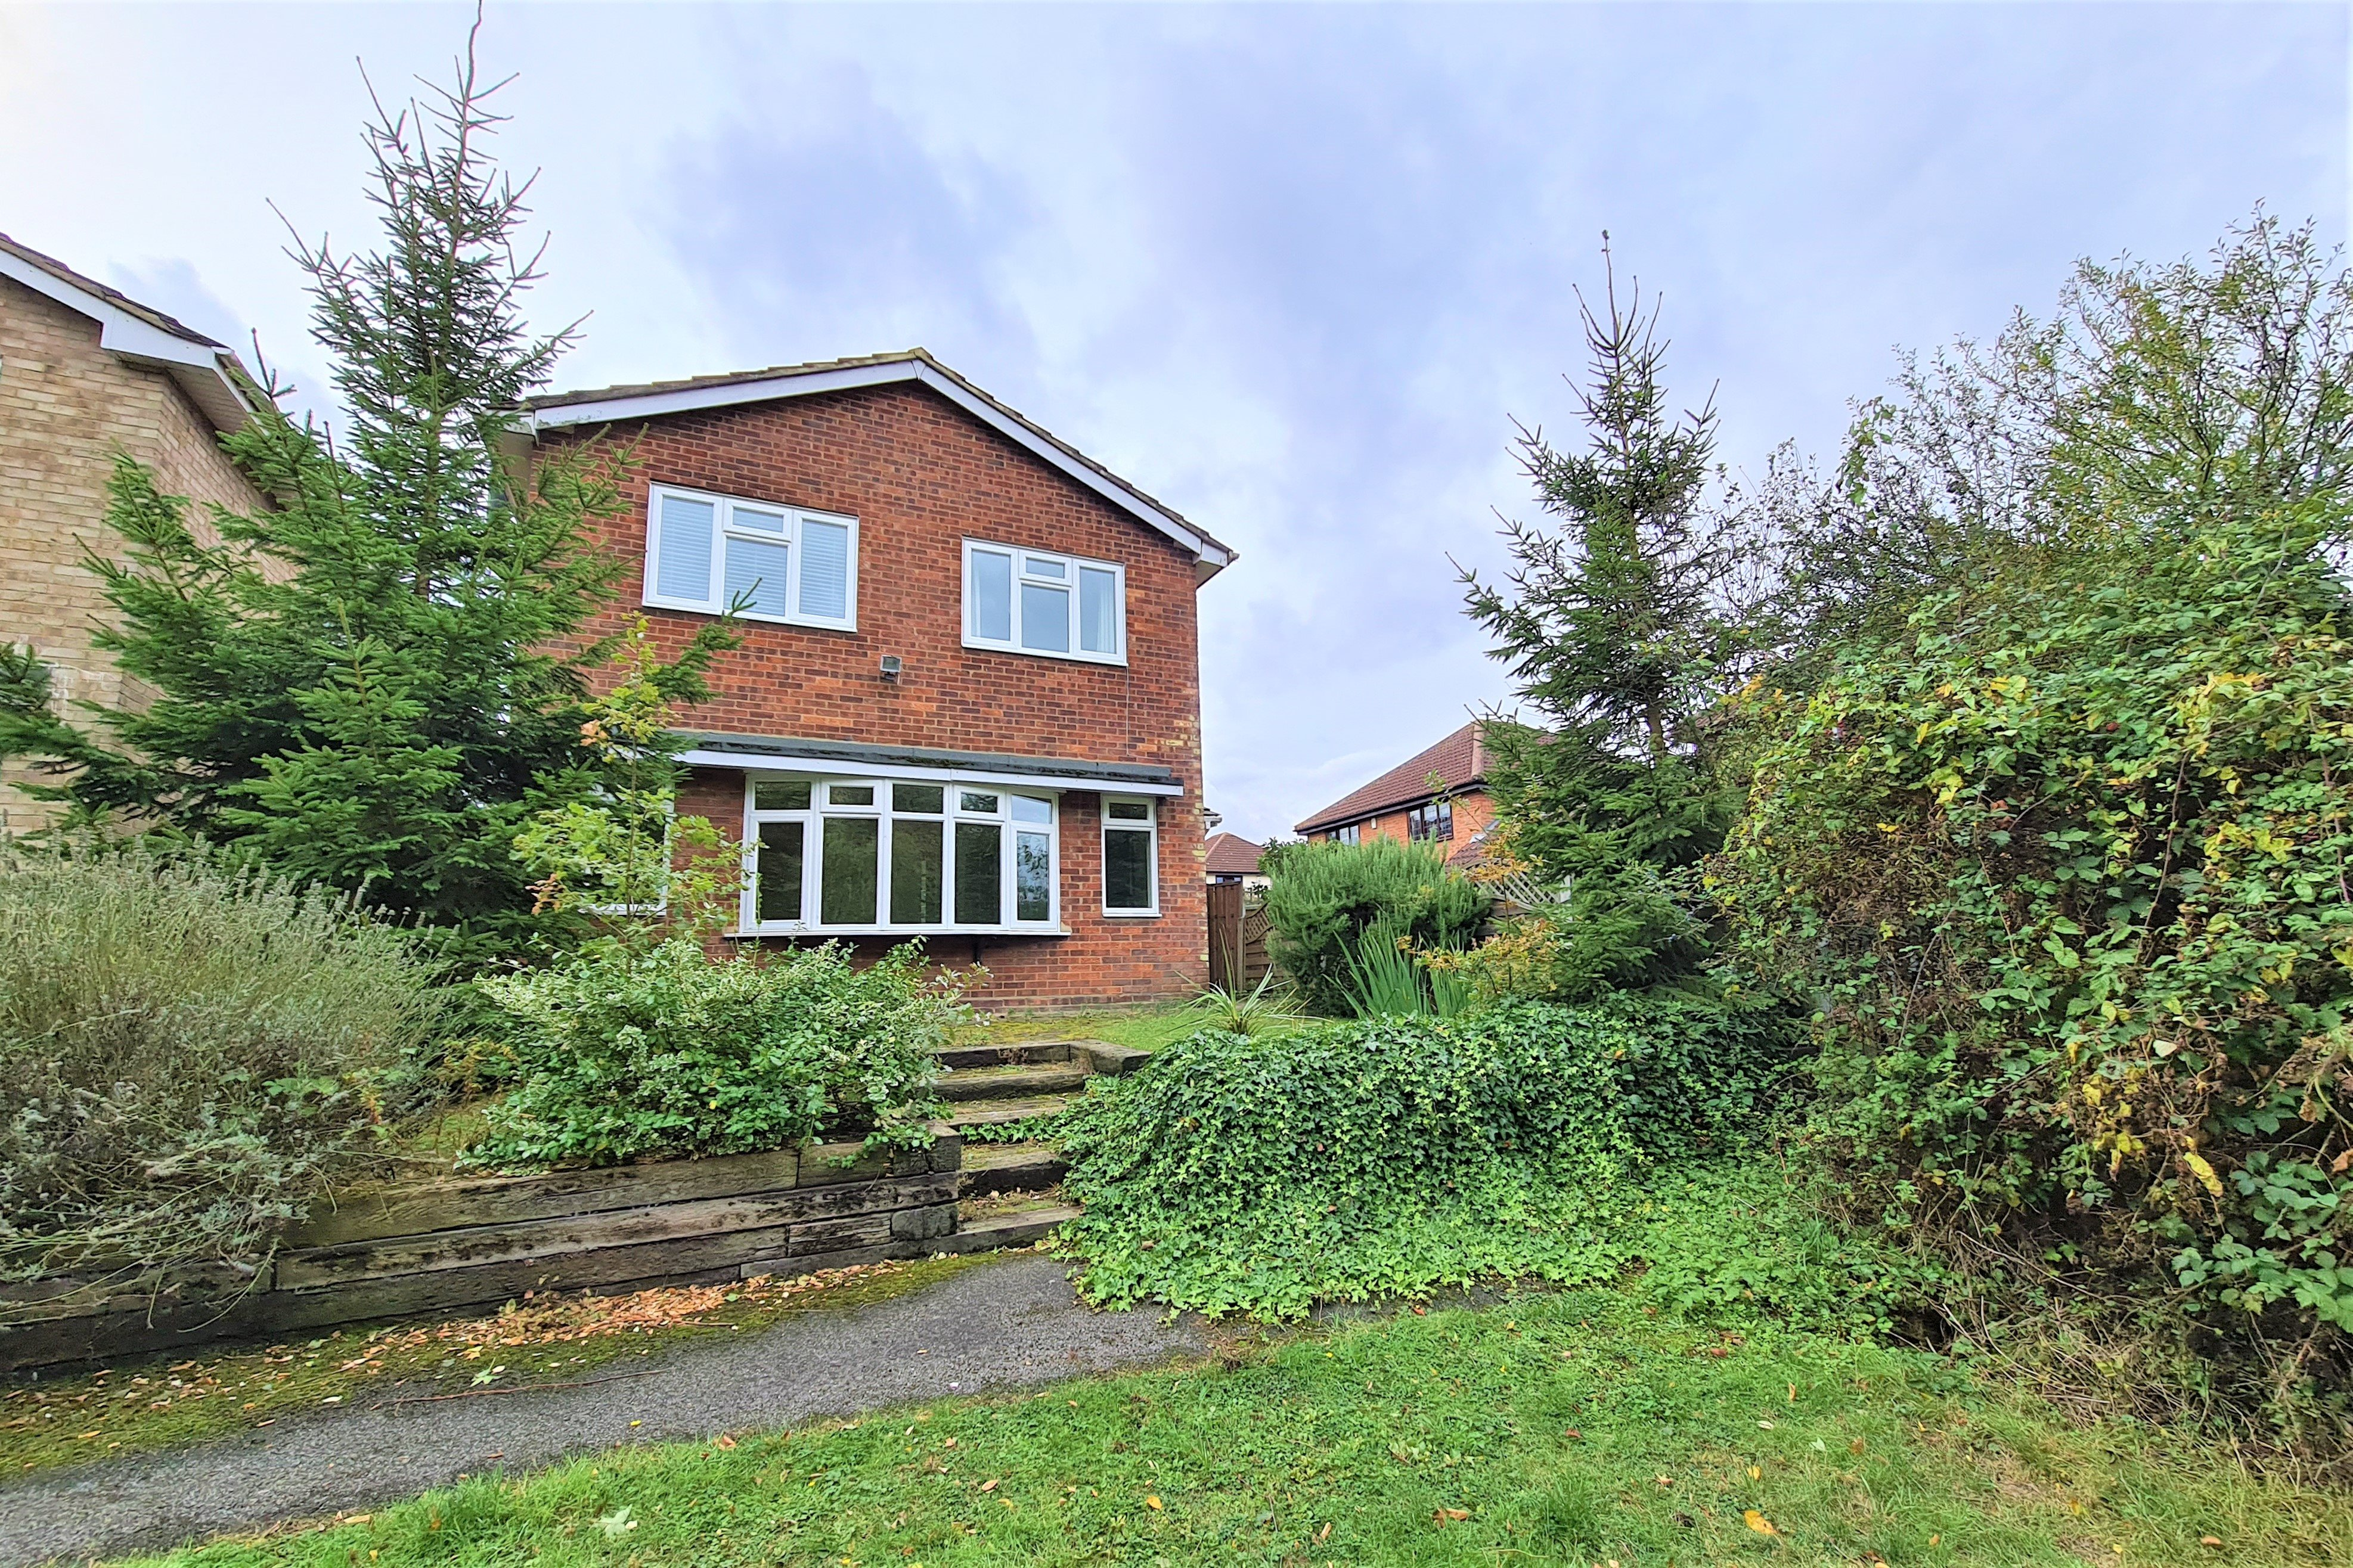 4 bed house for sale in Lilyville Walk, Rayleigh 0